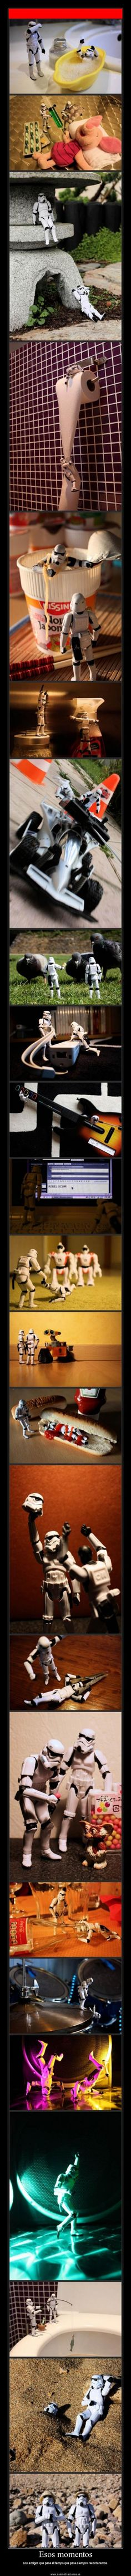 Stuff stormtroopers do never gets old. #starwars I think this says Those Moments: friends always remember those times together (something along those lines)